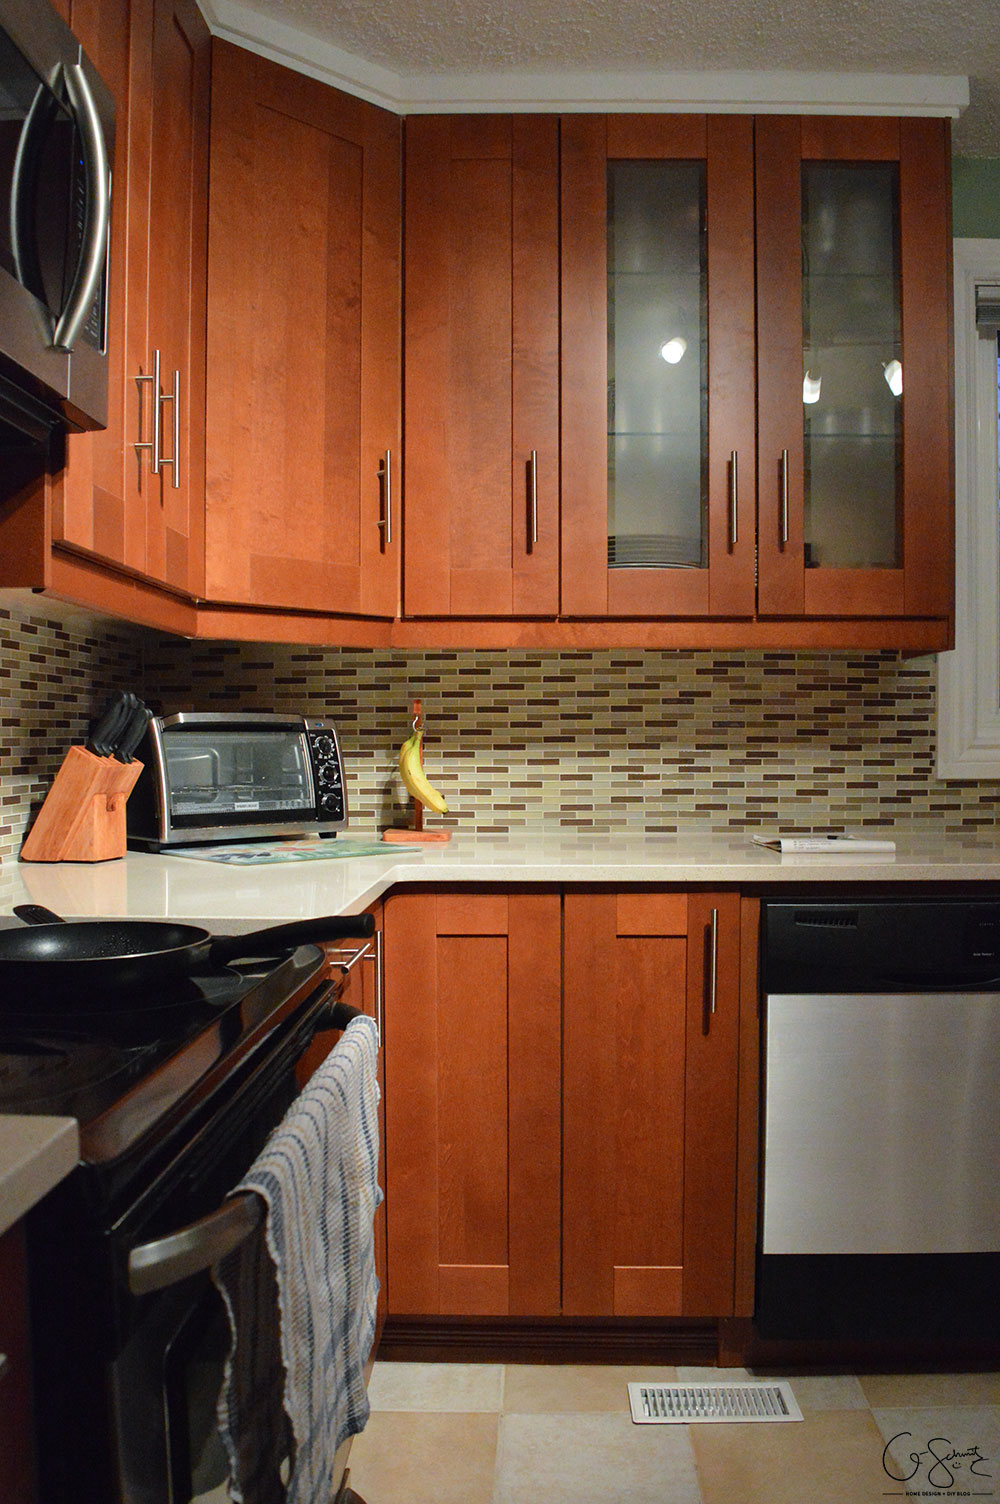 The before and after photo reveal of our DIY kitchen renovation. Check out all the great features we added to make this space unique. I can't believe what it used to look like!